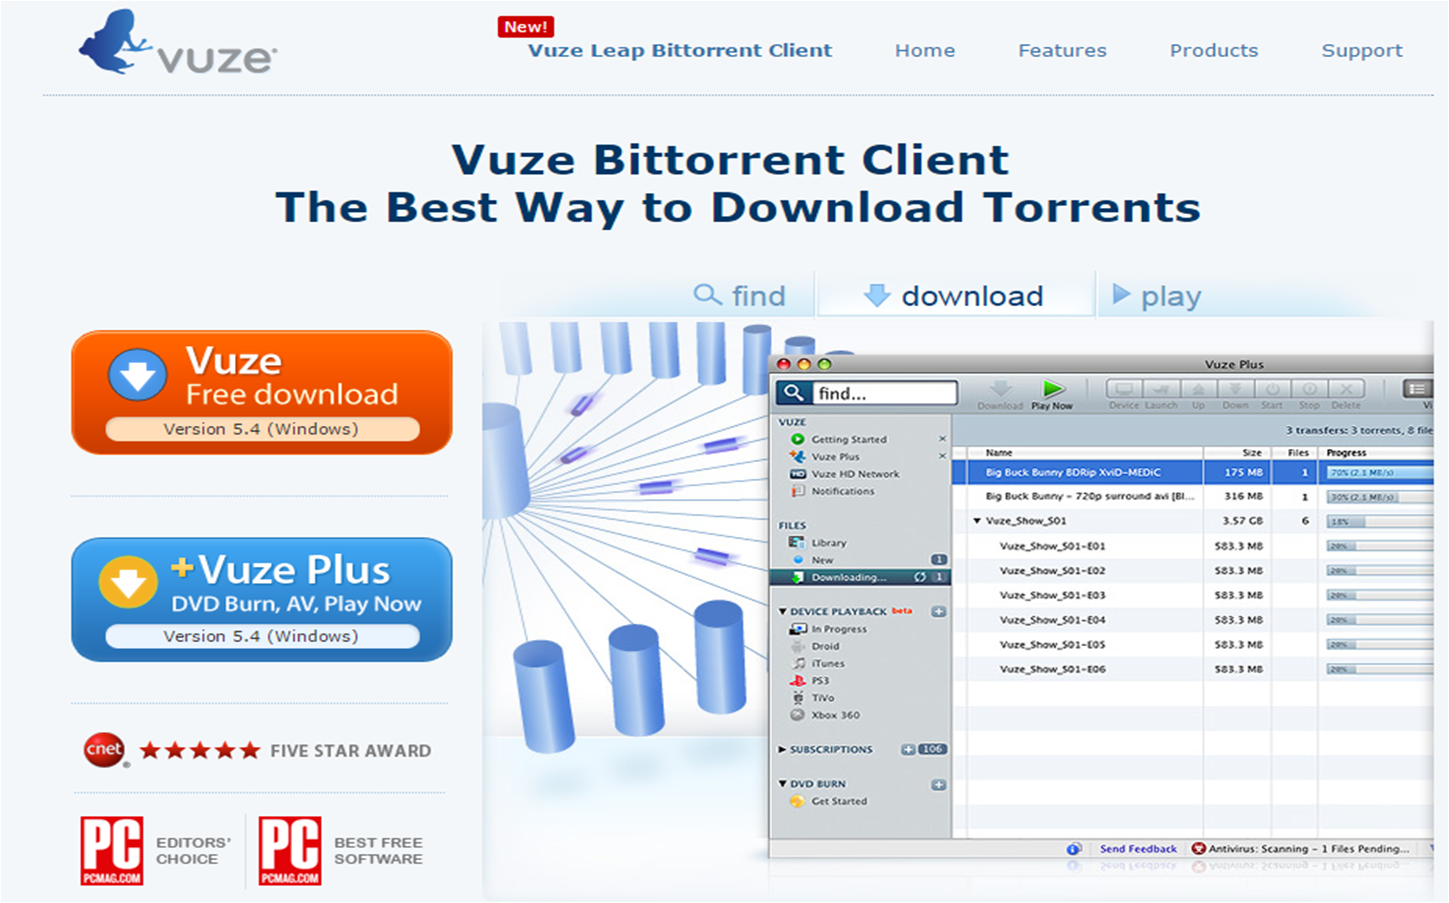 Vuze templates free download download templates for vuze for Best vuze templates